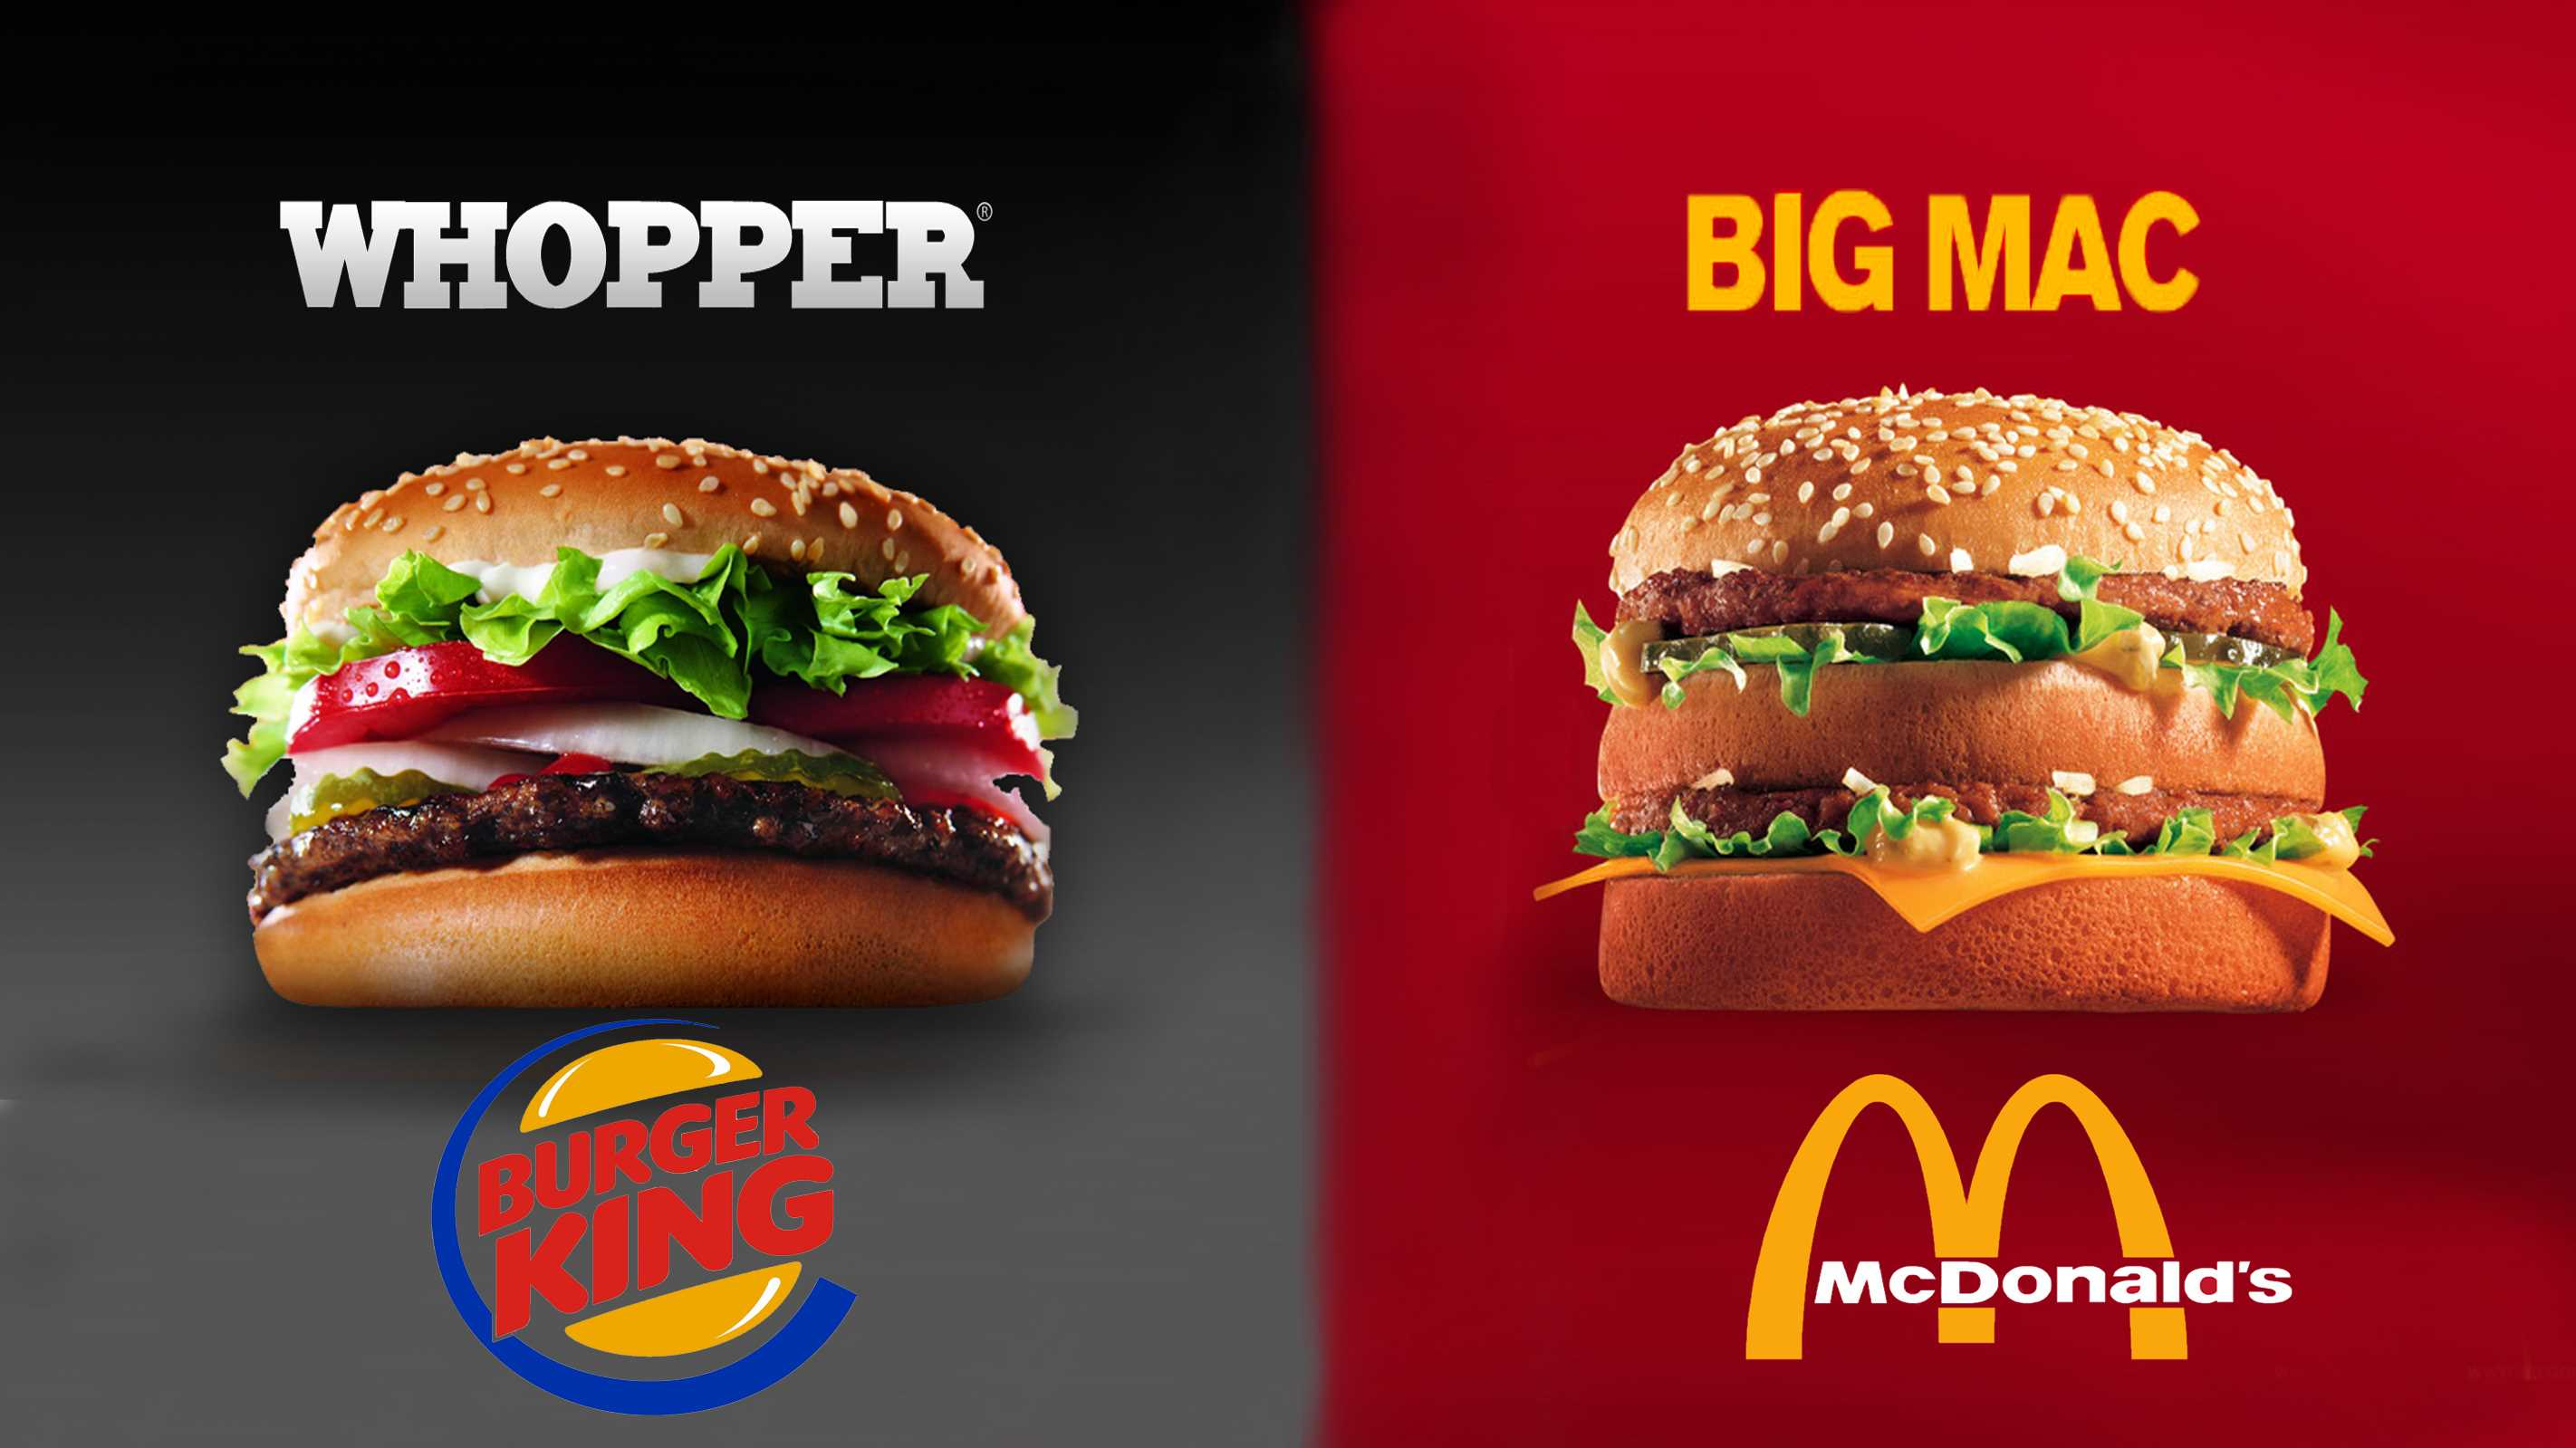 whopper vs big mac which burger taste better netivist. Black Bedroom Furniture Sets. Home Design Ideas